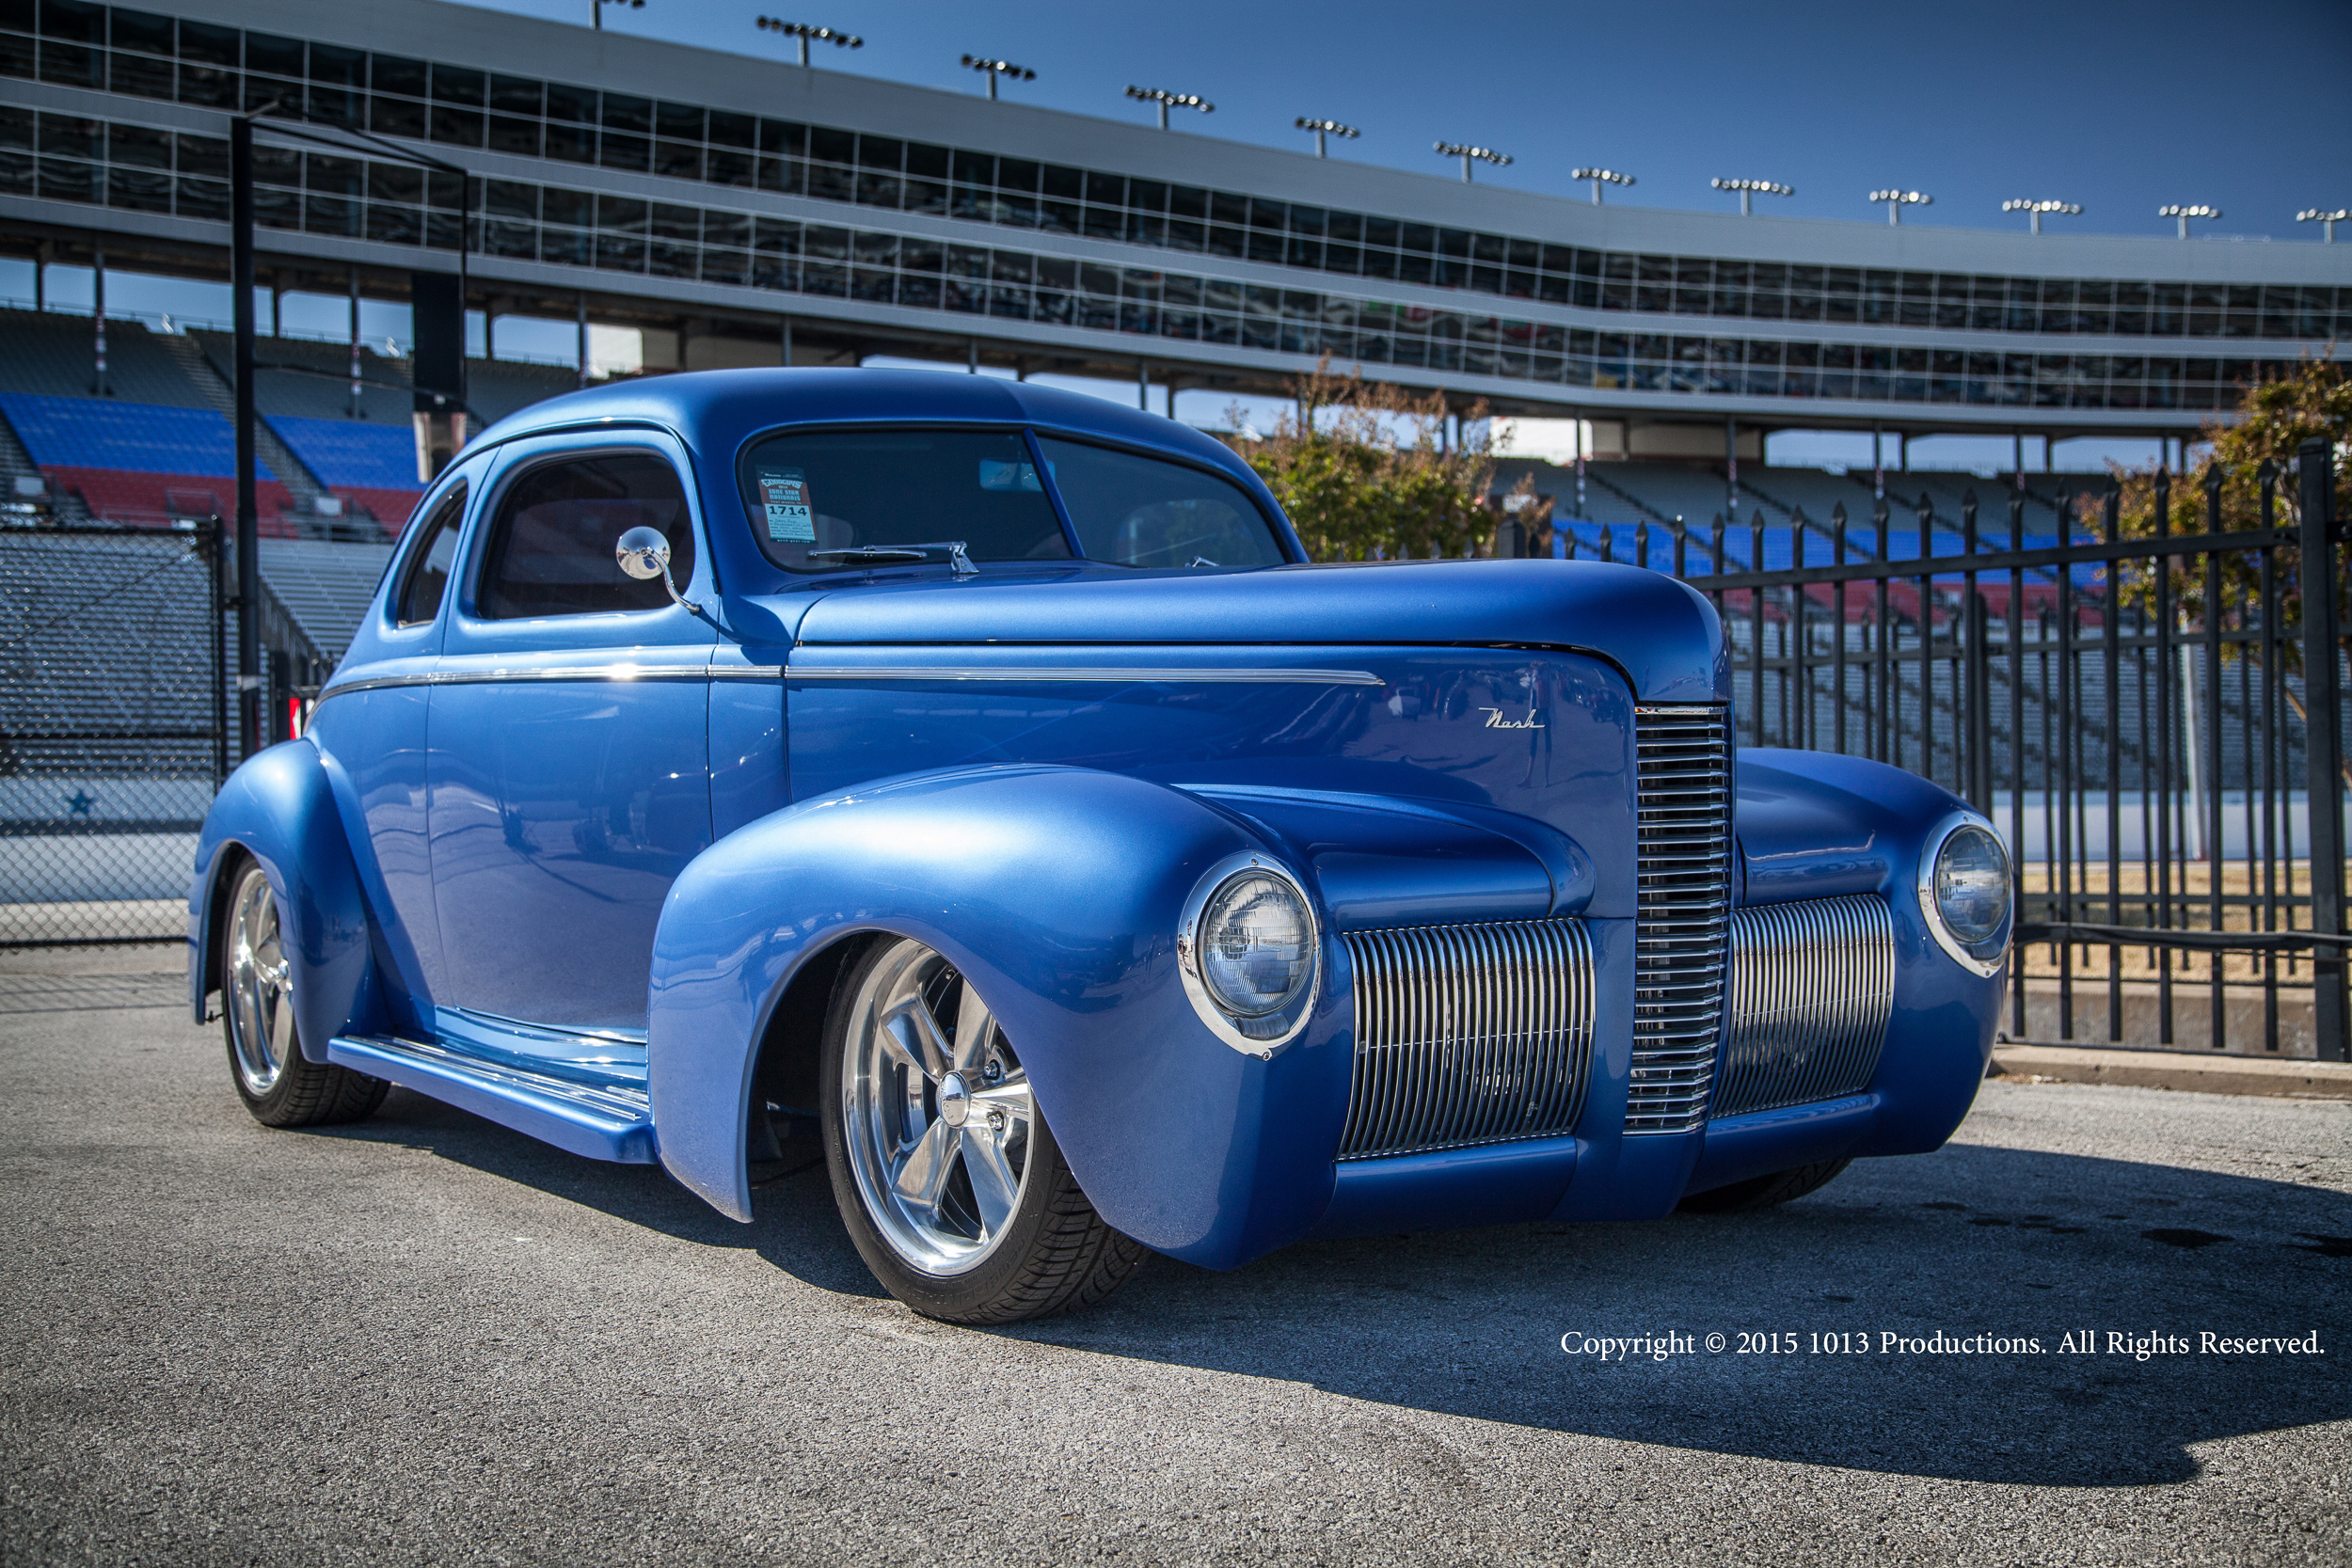 GoodGuys_2014-Nash.jpg